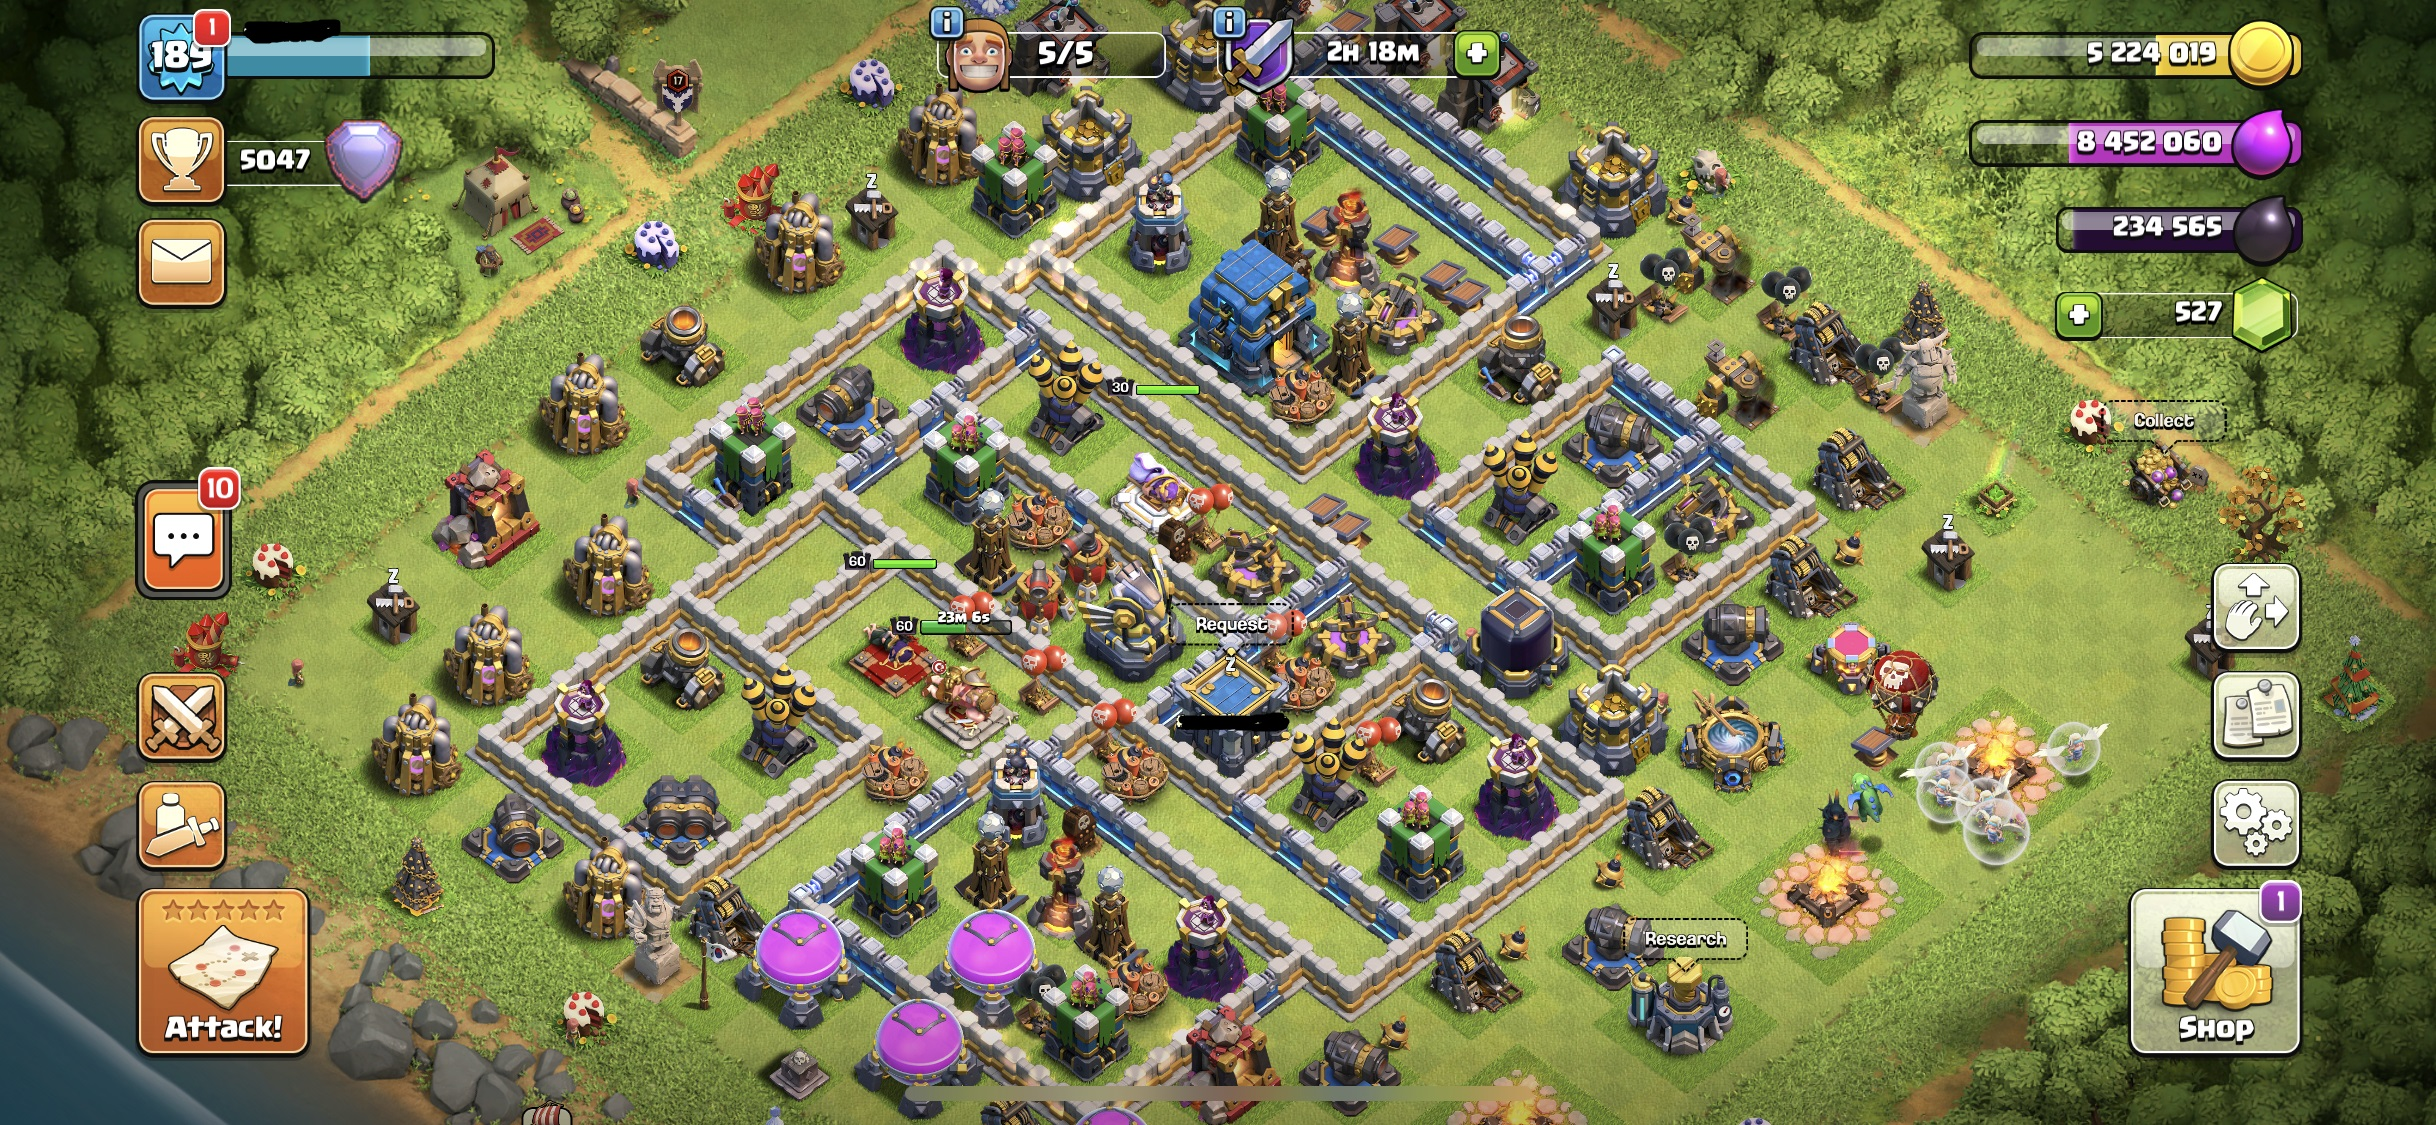 Clash of Clans Max Heroes/Spells only Walls left